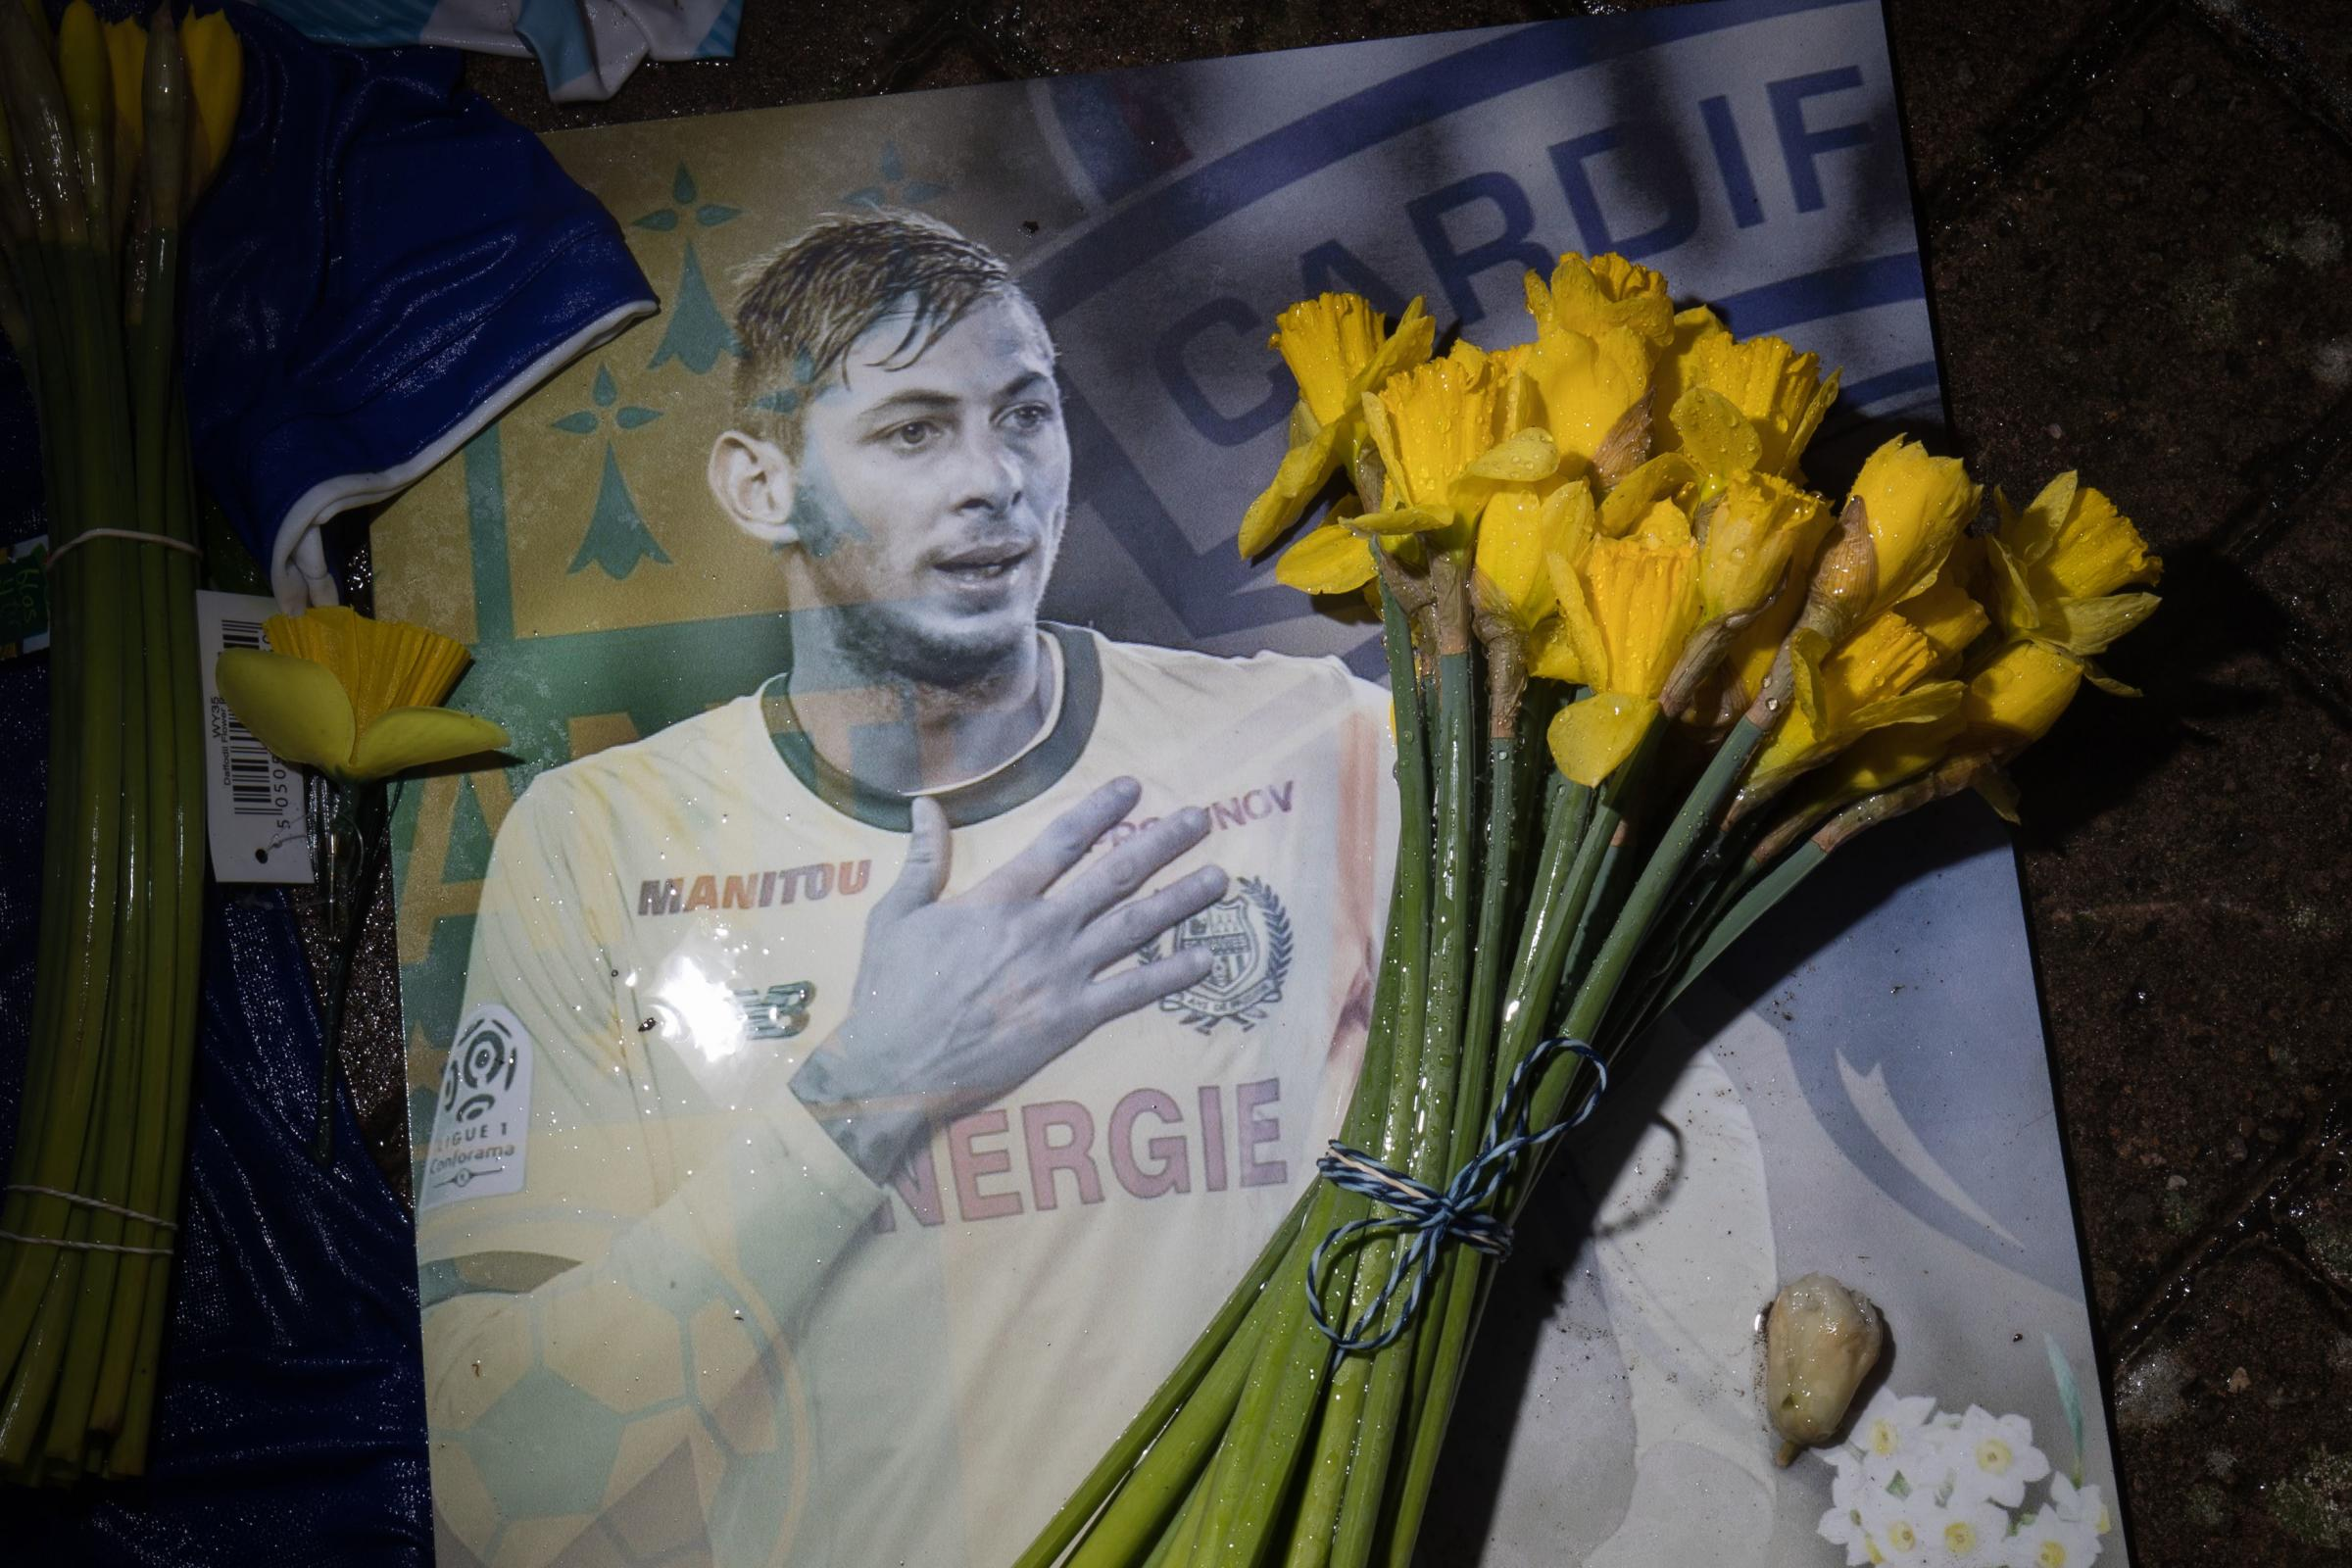 Cardiff City boss: We have to move on from Emiliano Sala tragedy